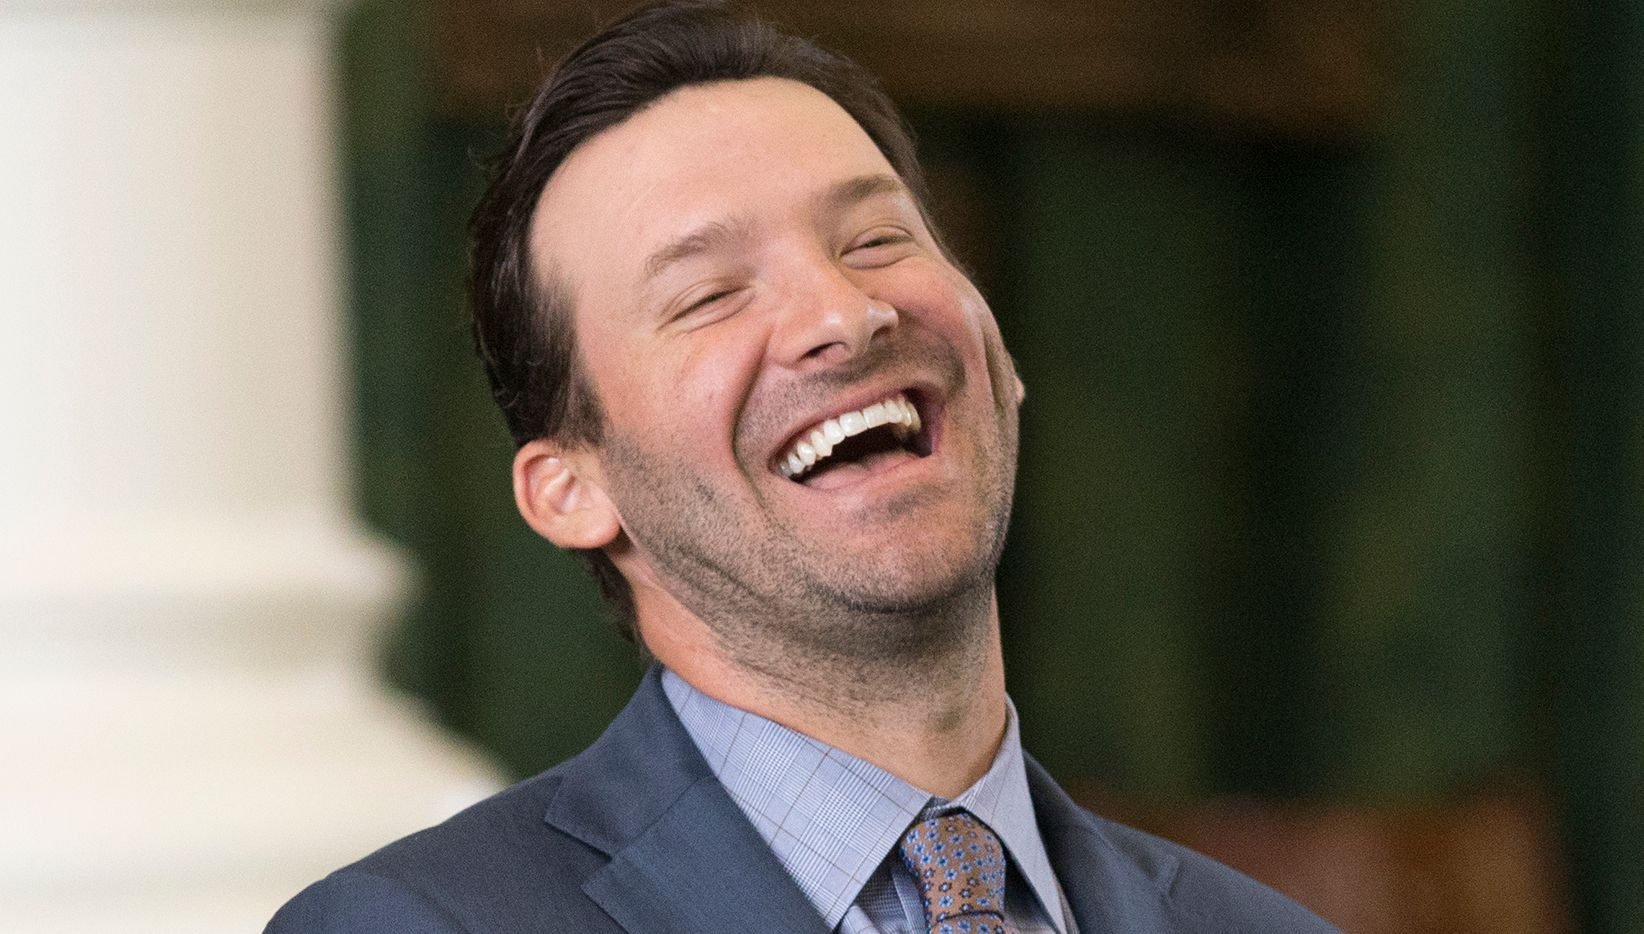 Former Dallas Cowboys quarterback Tony Romo smiles as he is recognized by the Senate at the Texas Capitol in Austin, Wednesday, May 3, 2017.